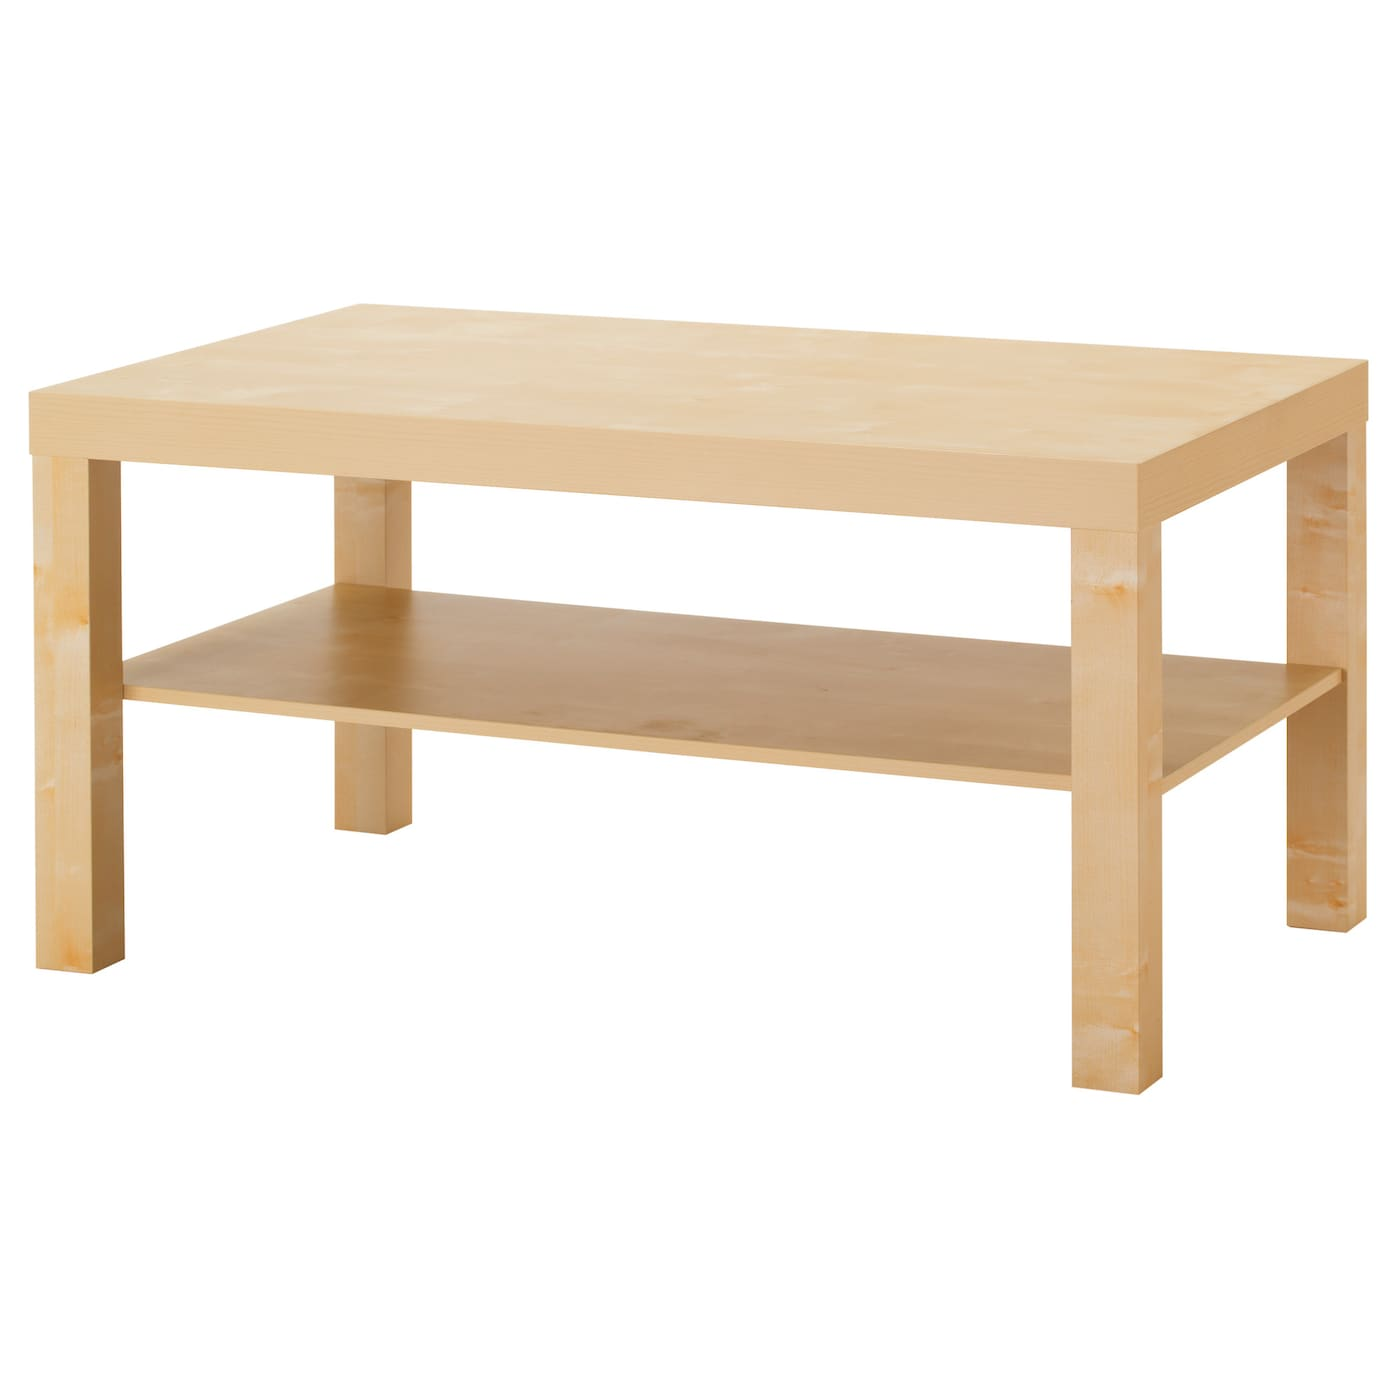 Lack coffee table birch effect 90 x 55 cm ikea for Ikea end tables salon